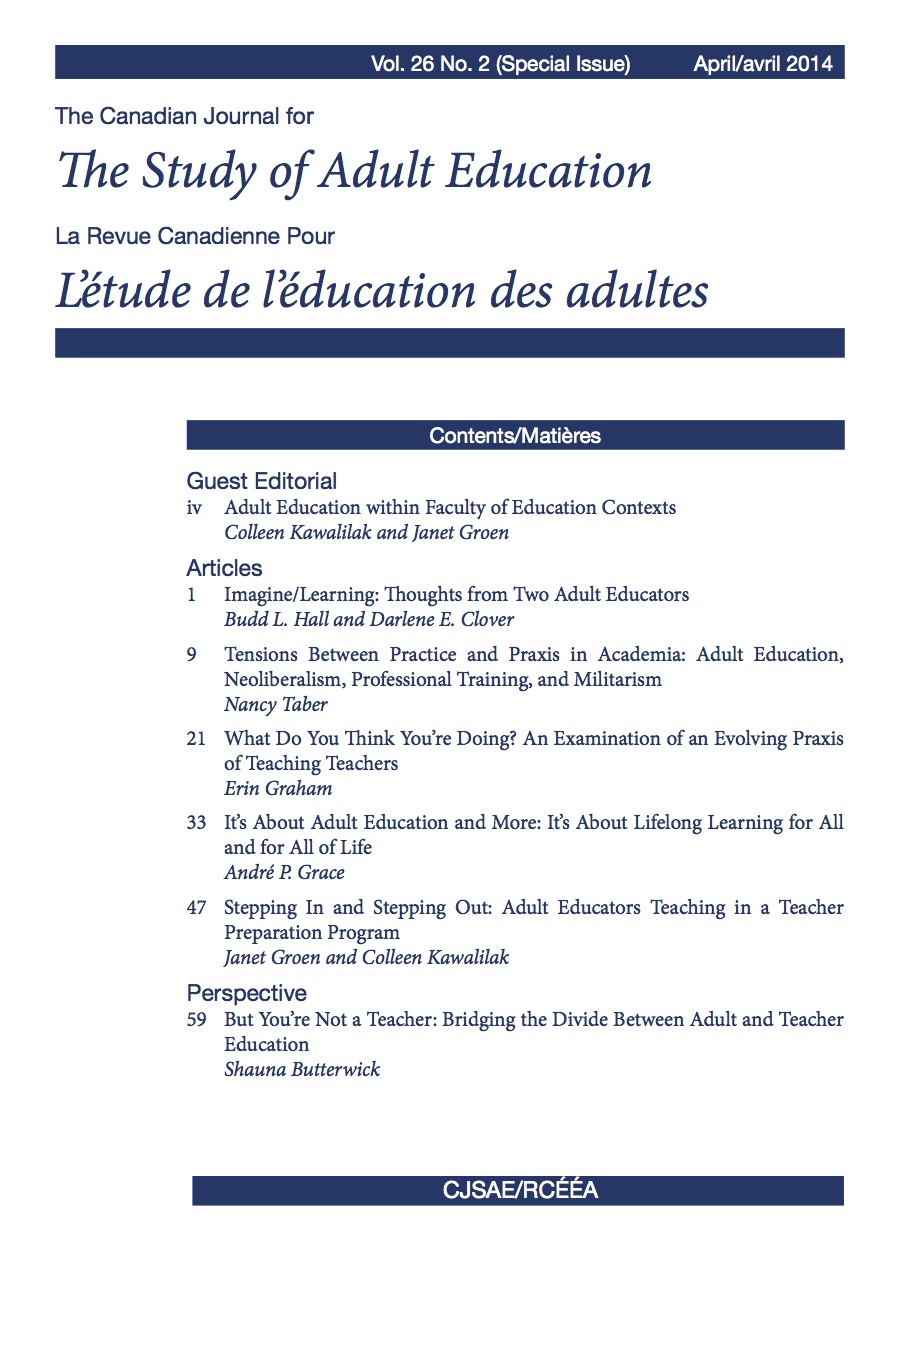 CJSAE/RCÉÉA Volume 26 Issue 2 (Special Issue